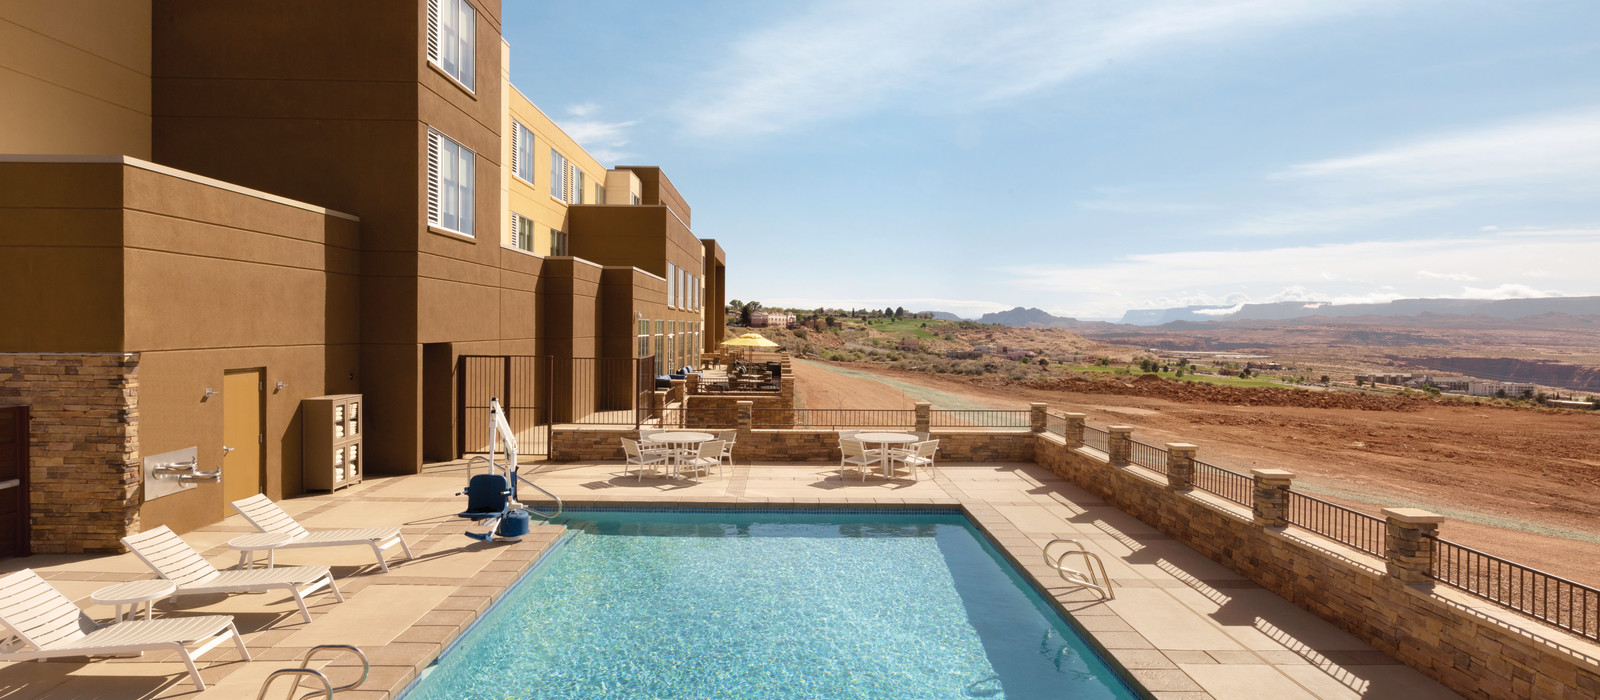 Hotel Hyatt Place Page/Lake Powell USA